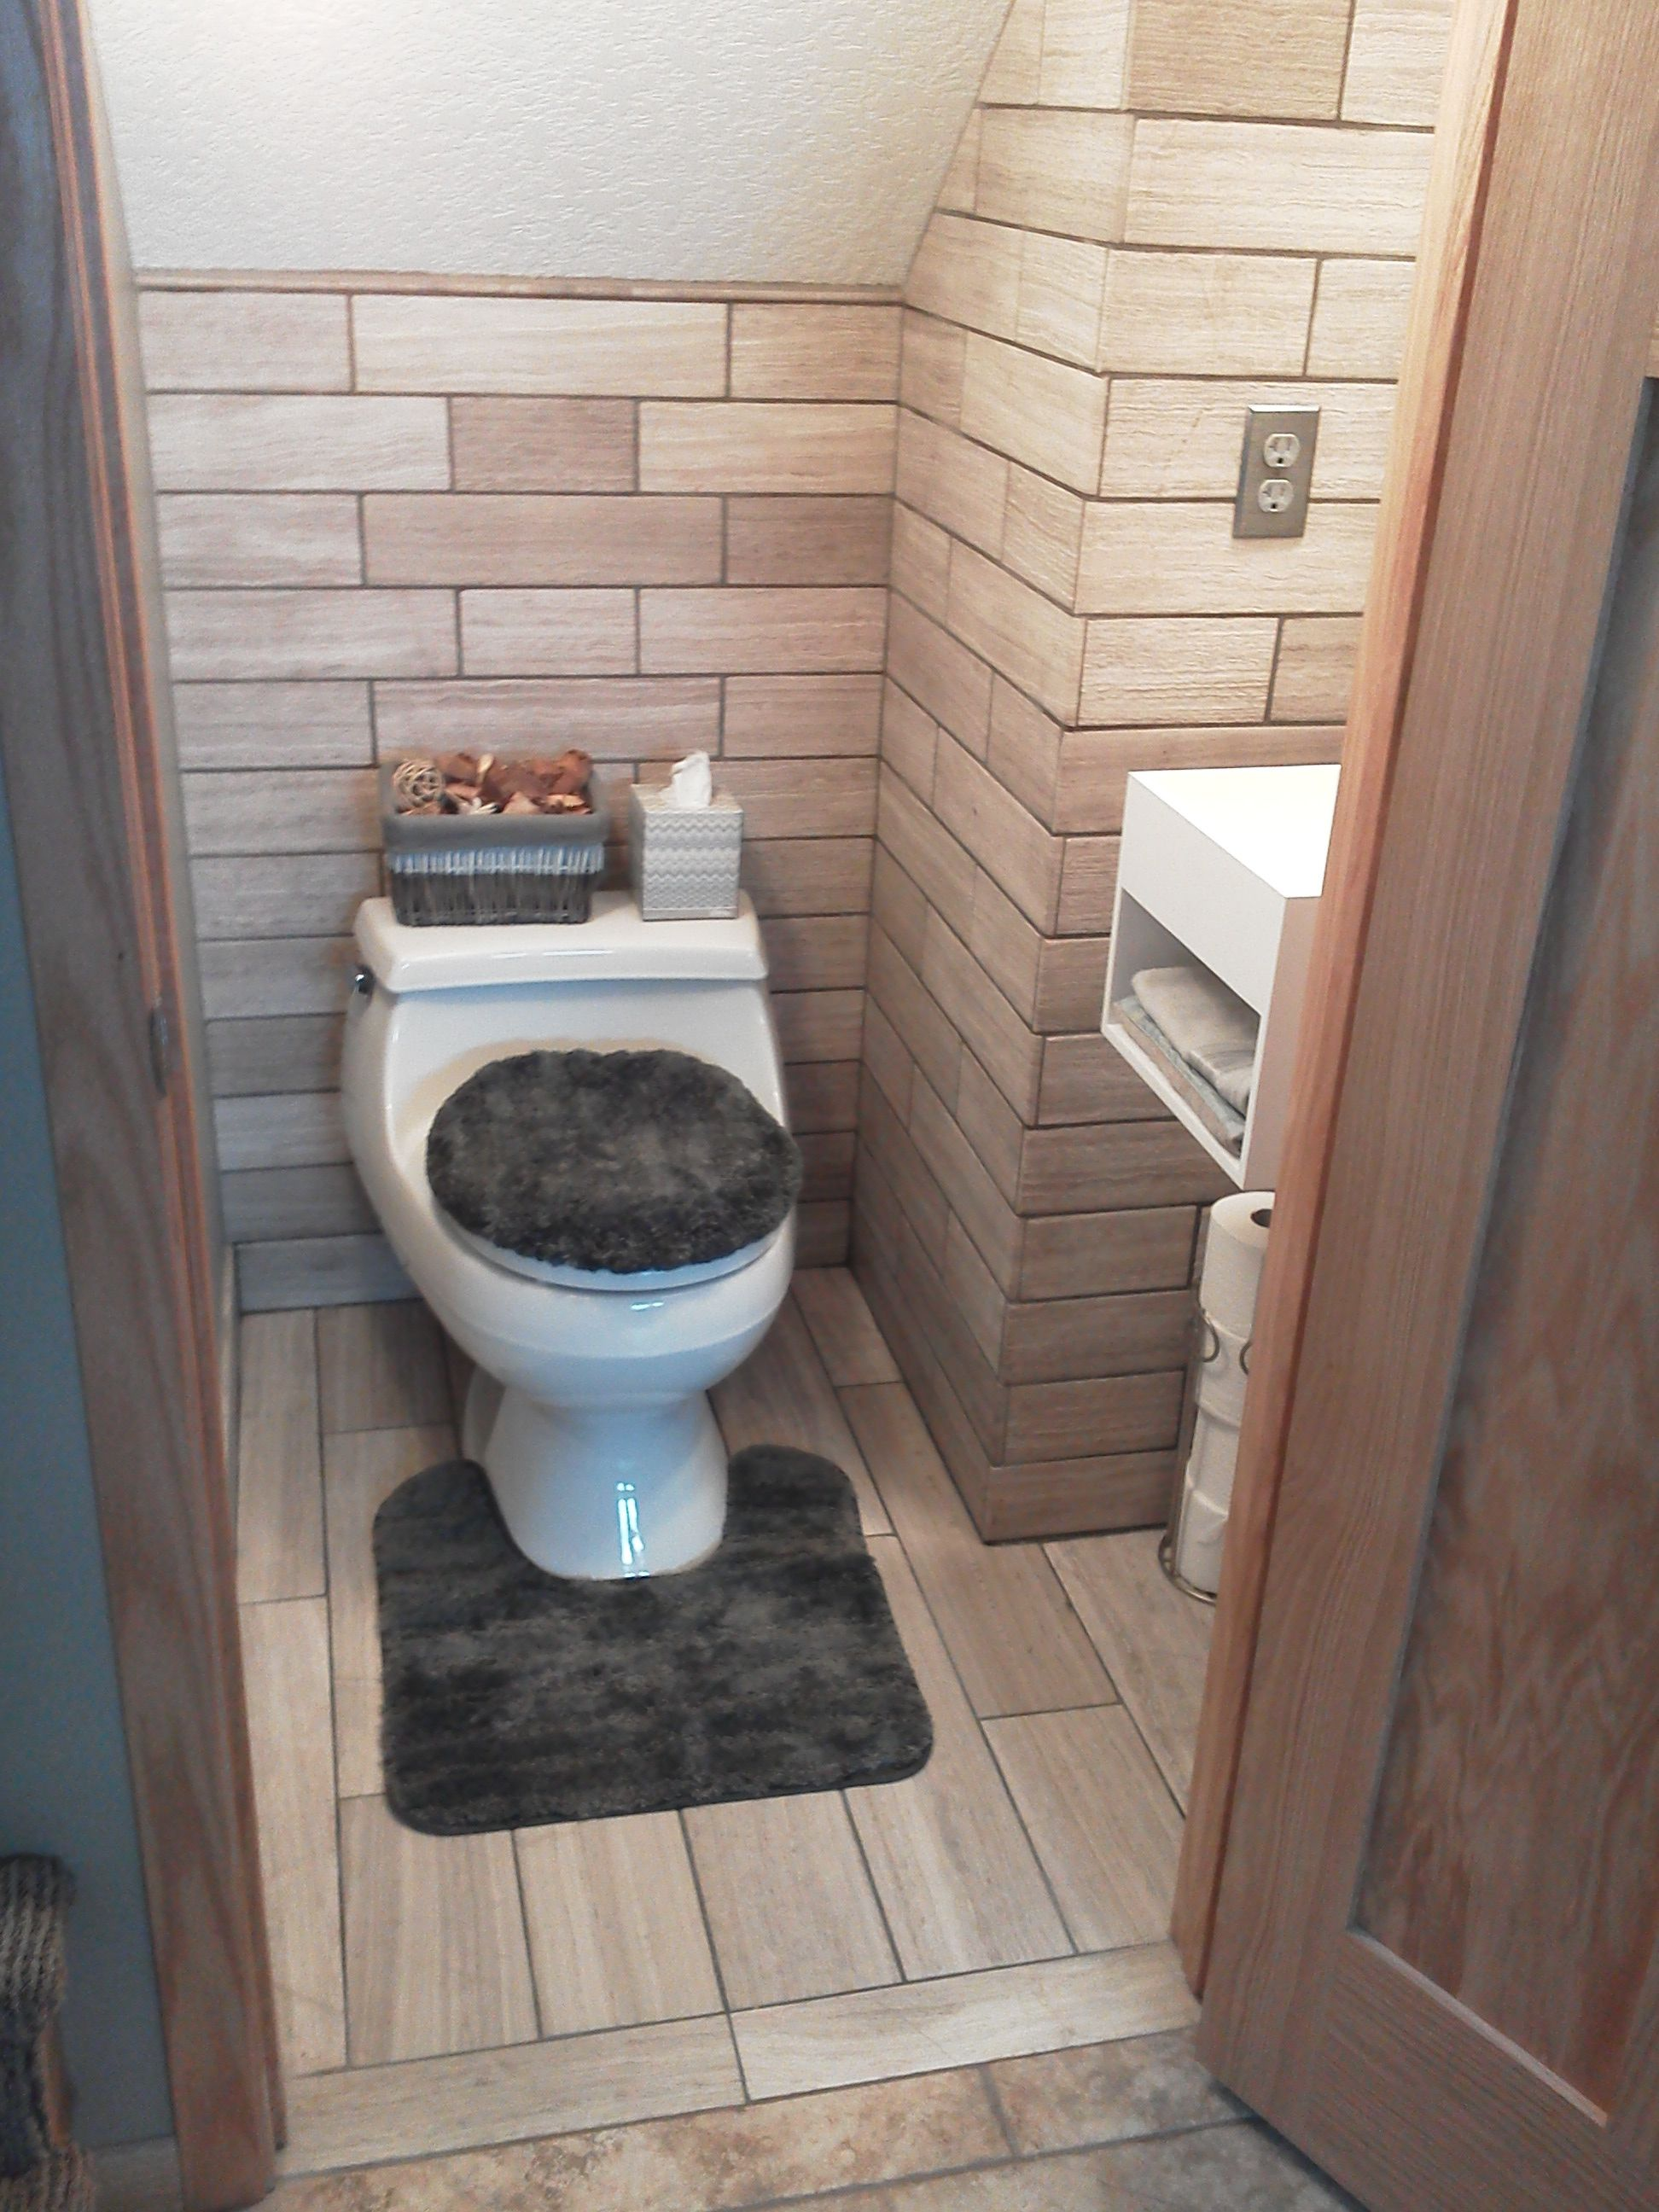 Bathroom Remodeling Tile Contractor Des Moines IA Bath - Bathroom remodel des moines